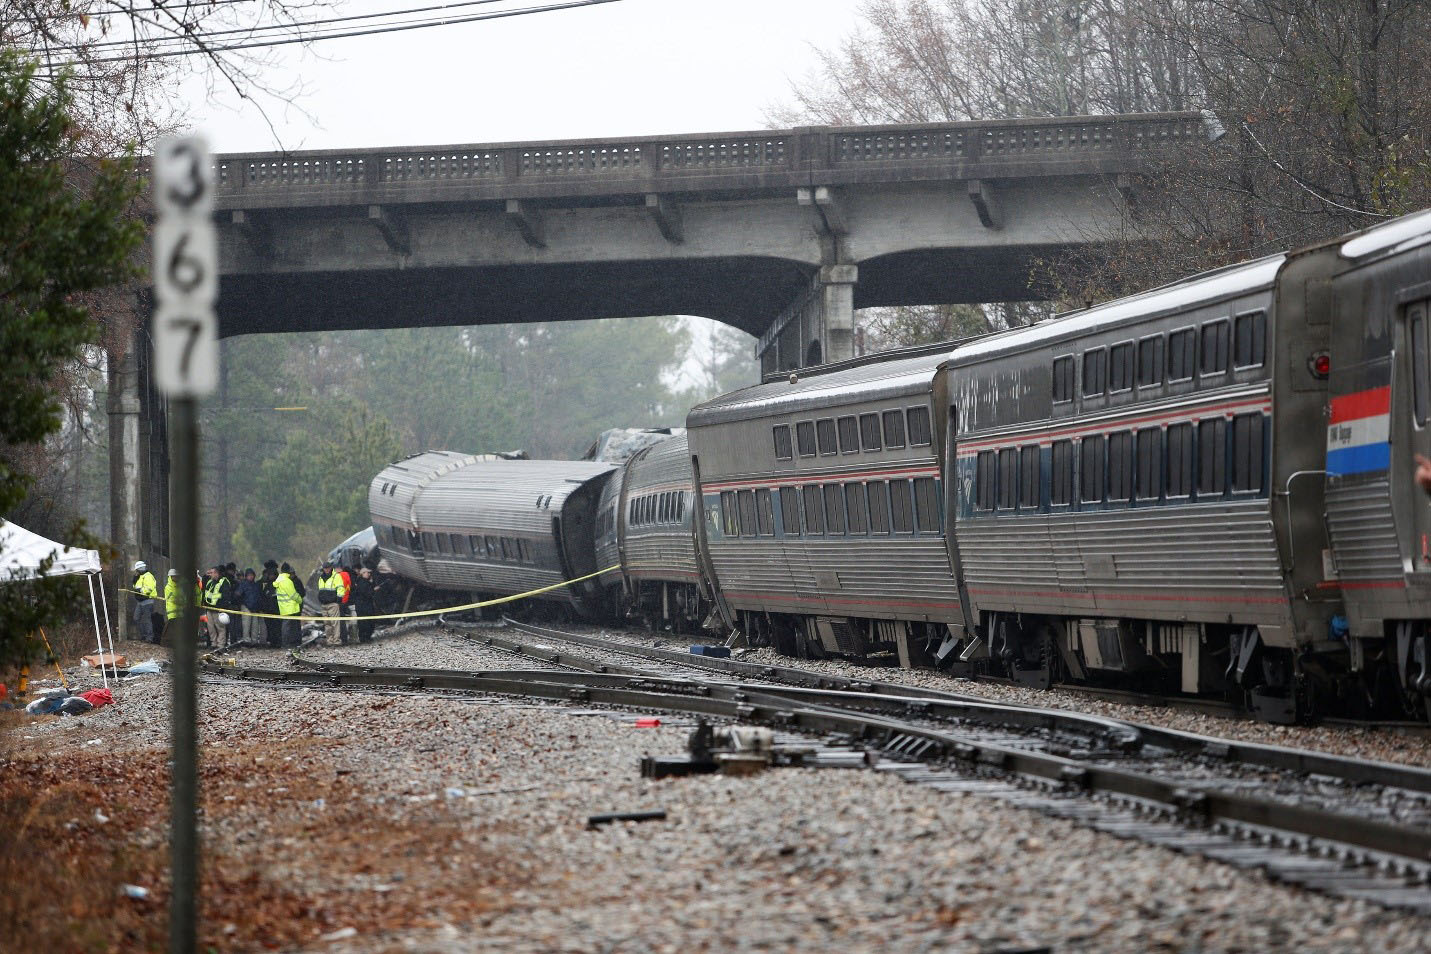 At Least Two Dead in South Carolina Amtrak Crash